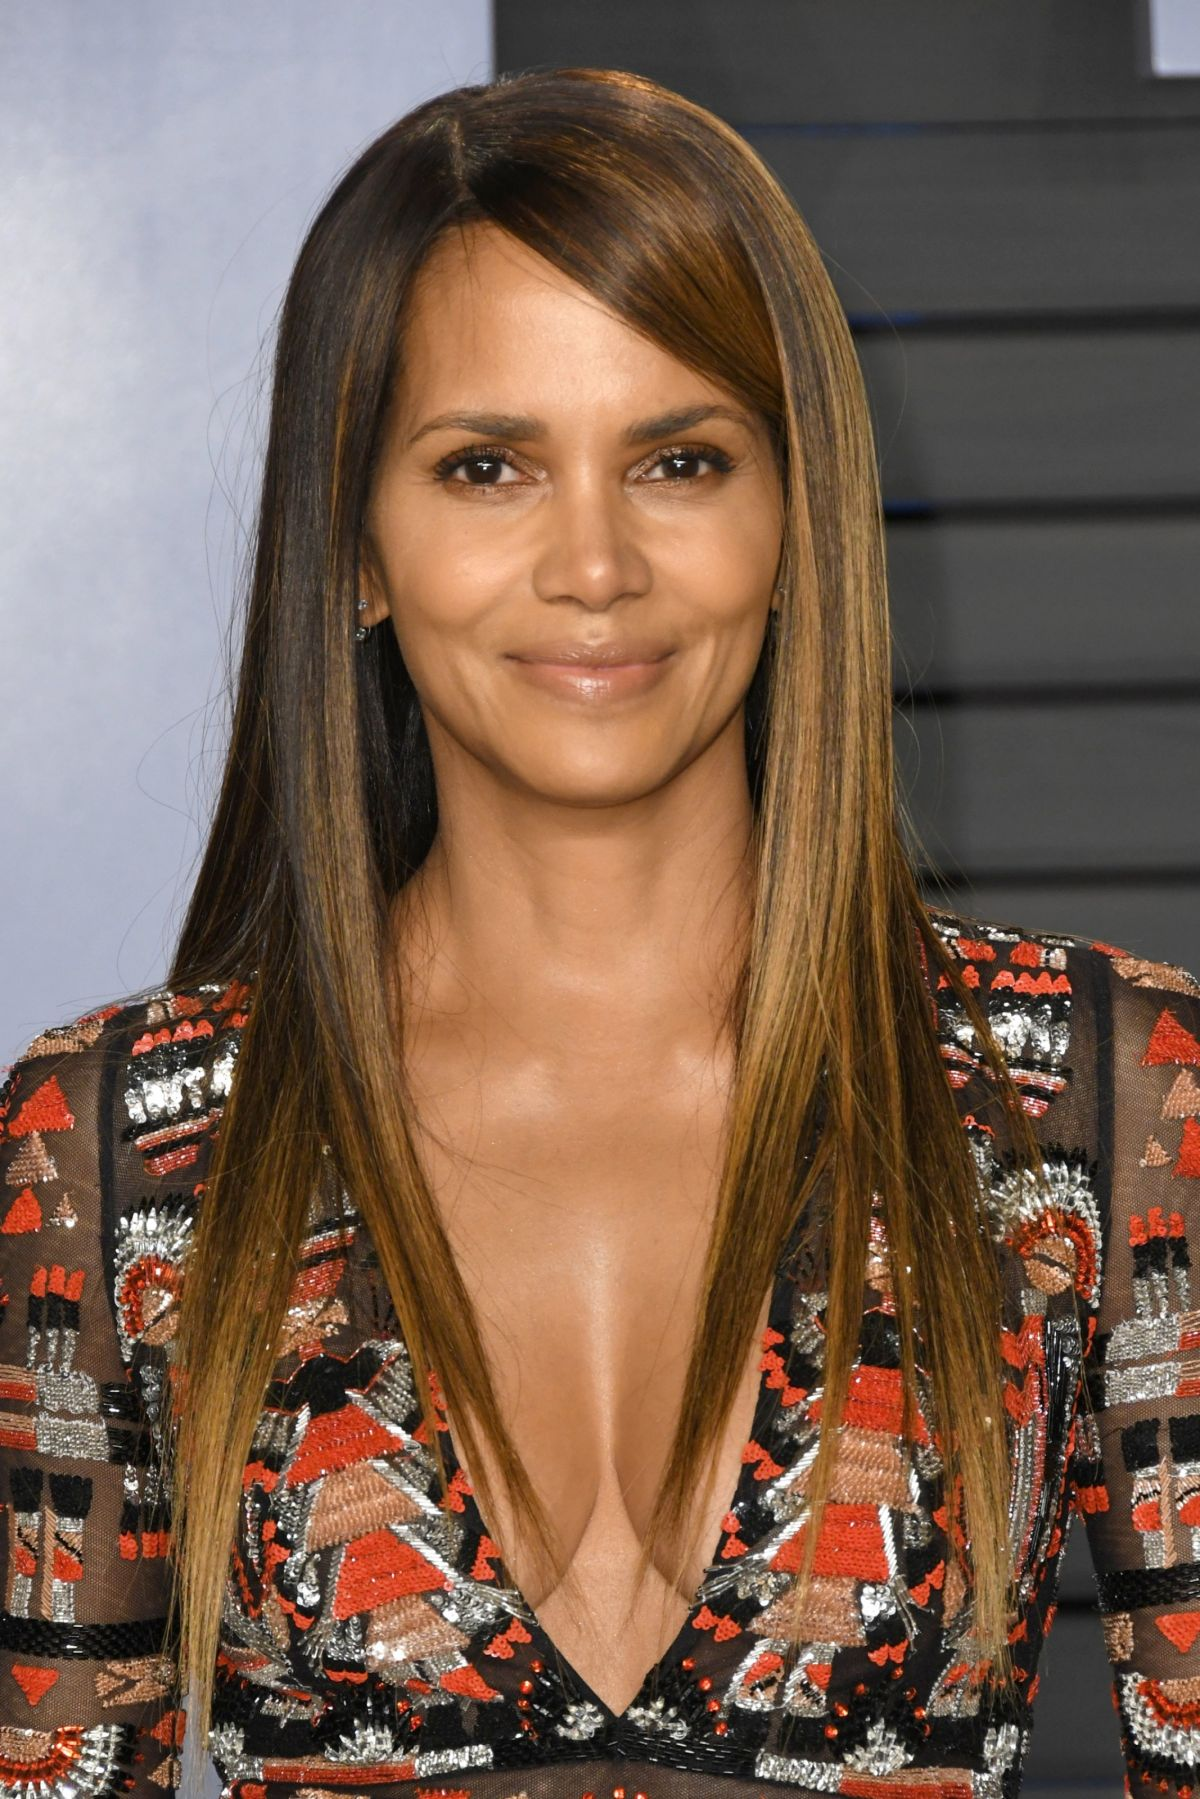 halle-berry-at-2018-vanity-fair-oscar-party-in-beverly-hills-03-04-2018-3.jpg&f=1&nofb=1